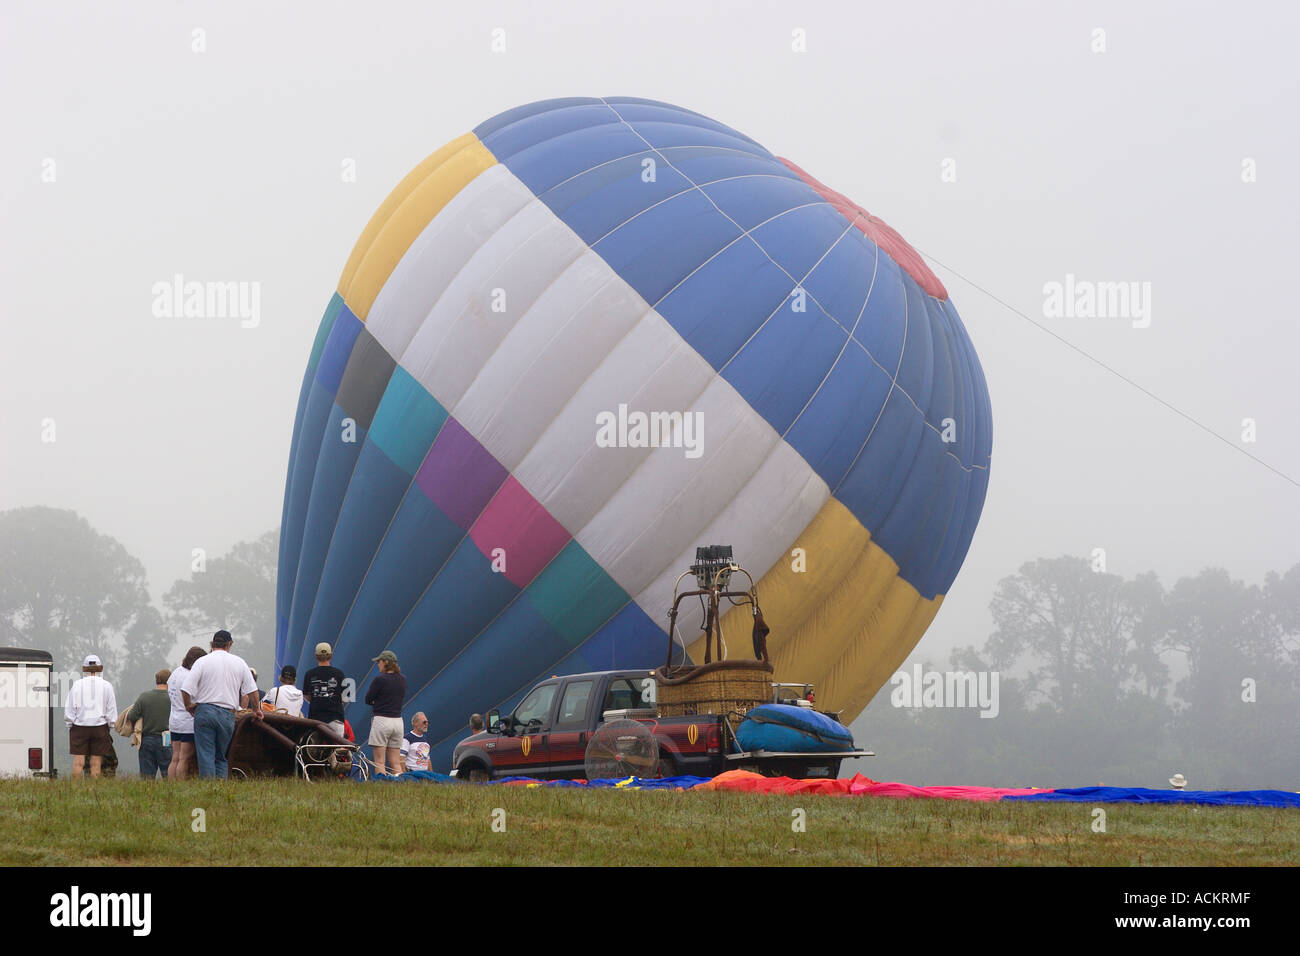 Hot air balloon being inflated on a foggy morning at balloon festival in Dunnellon, Florida, USA Stock Photo